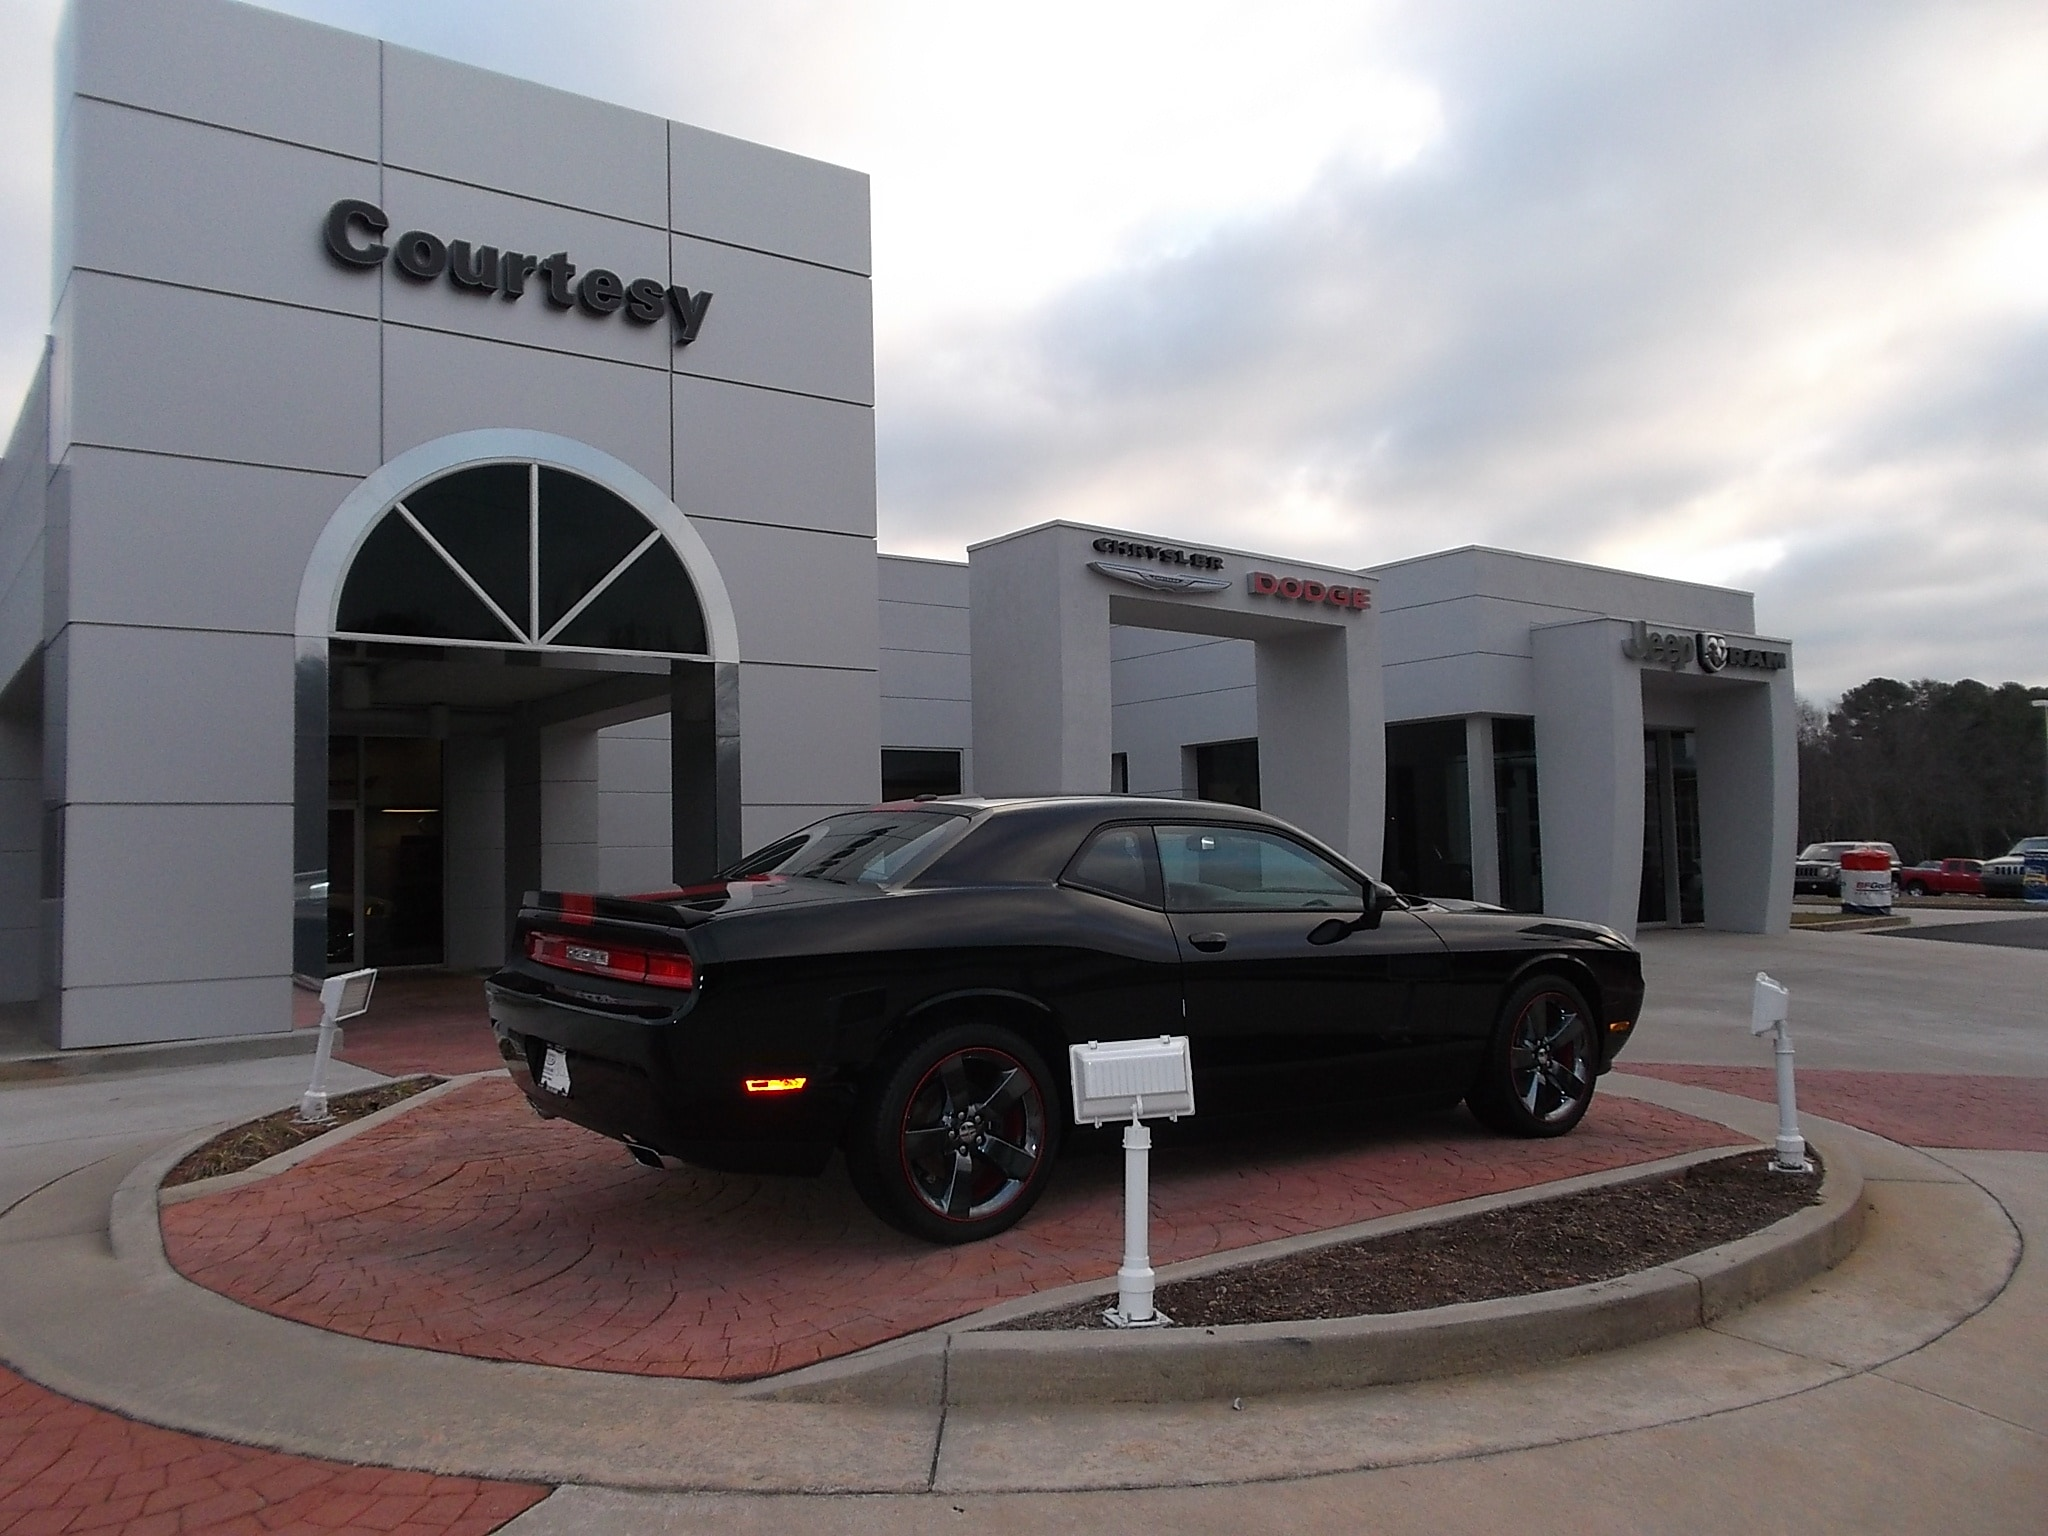 About Courtesy Chrysler Dodge Jeep Ram